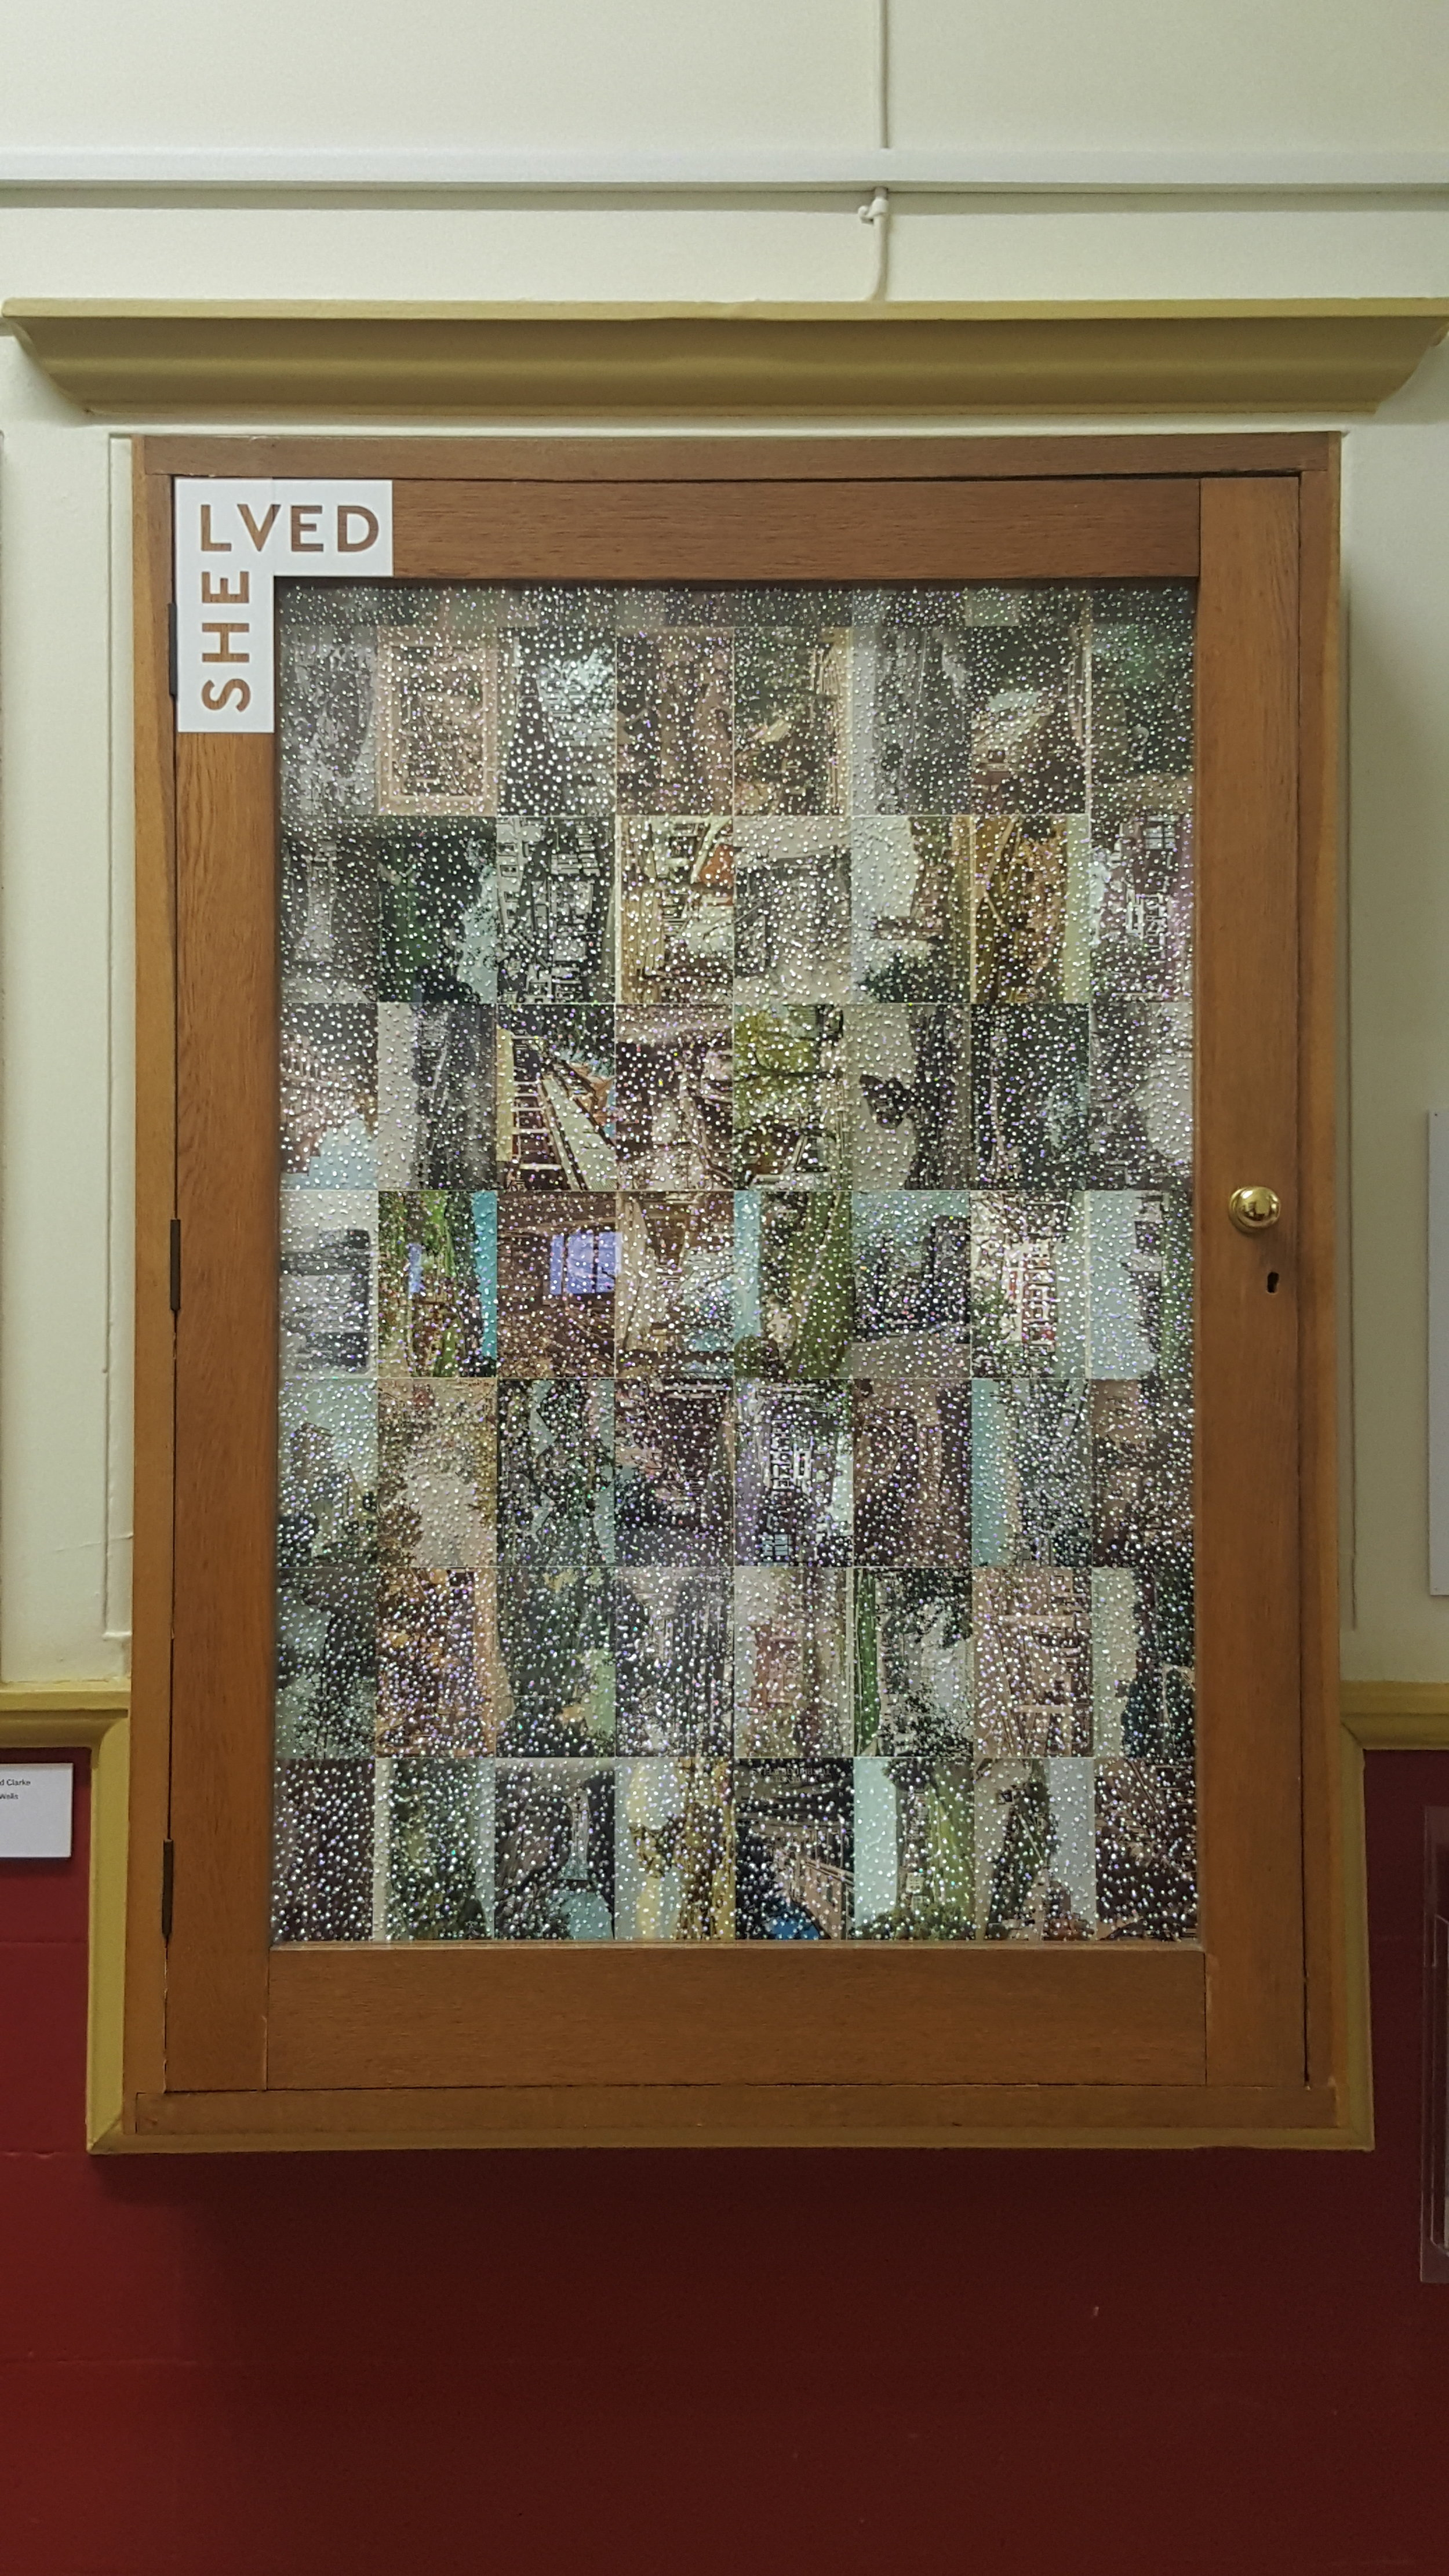 Inspired by pin prick art in the museum collection - using postcards from Tunbridge Wells.